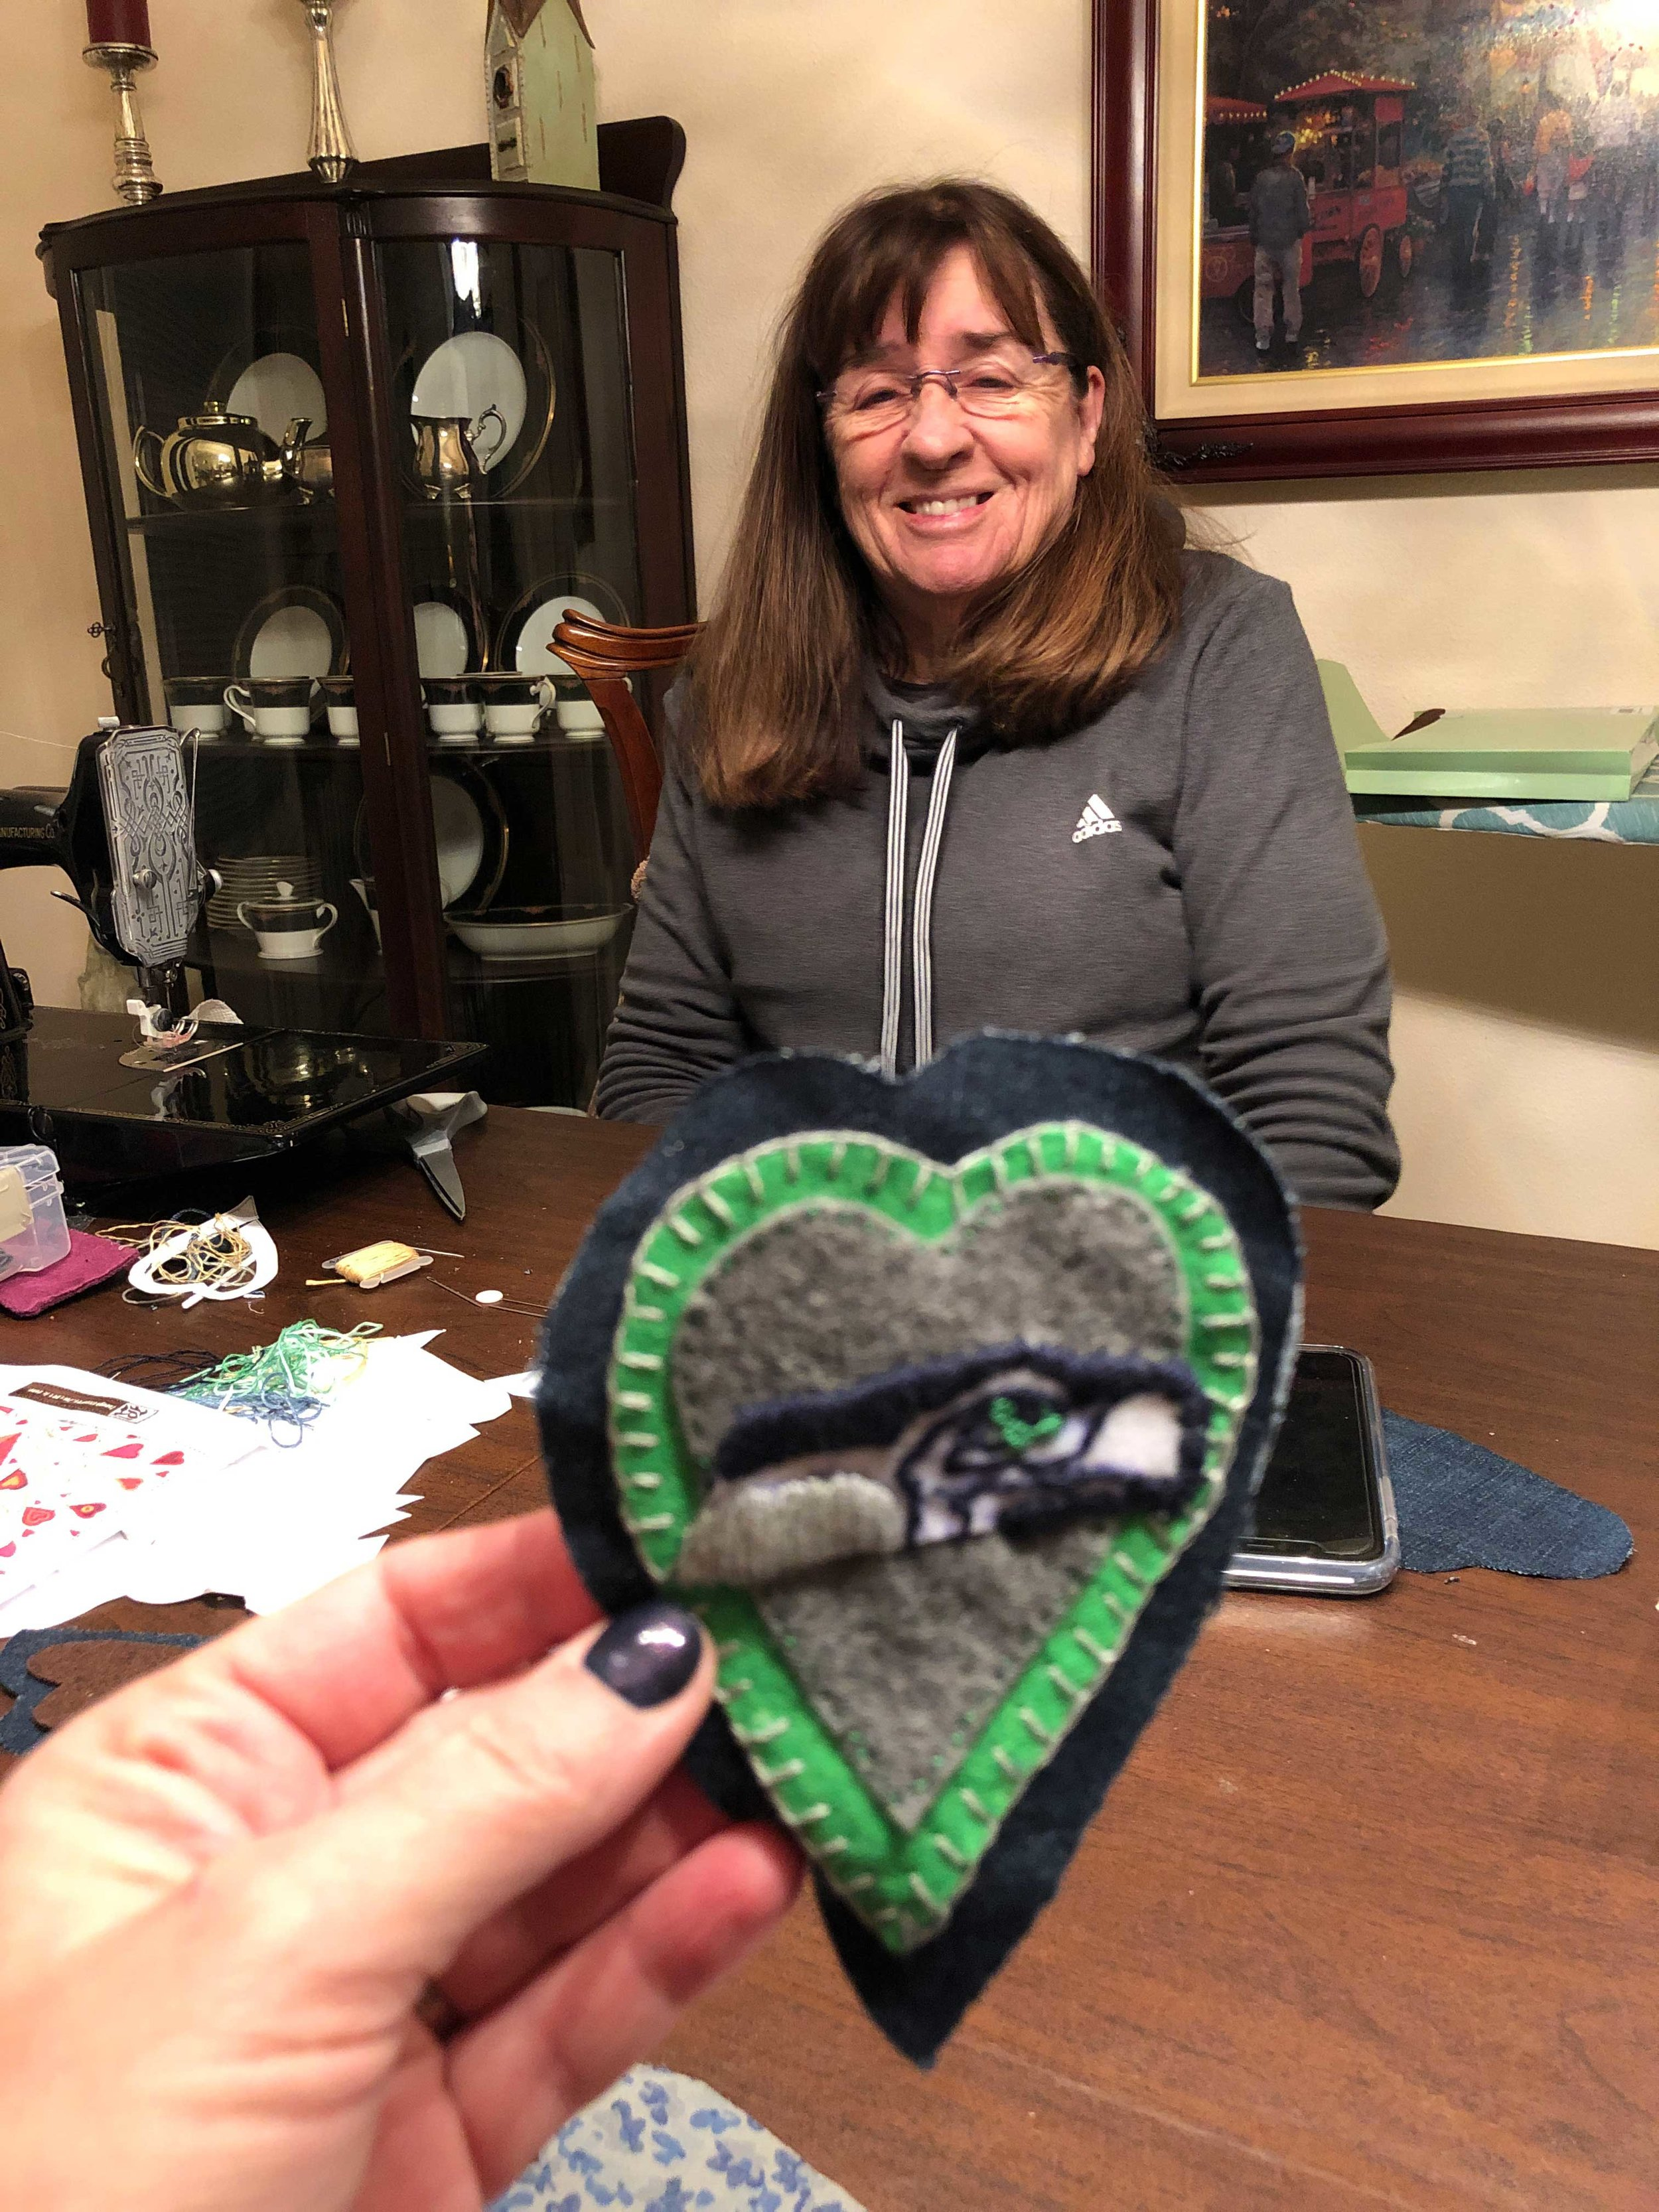 Mom-with-SeaHawks-heart.jpg